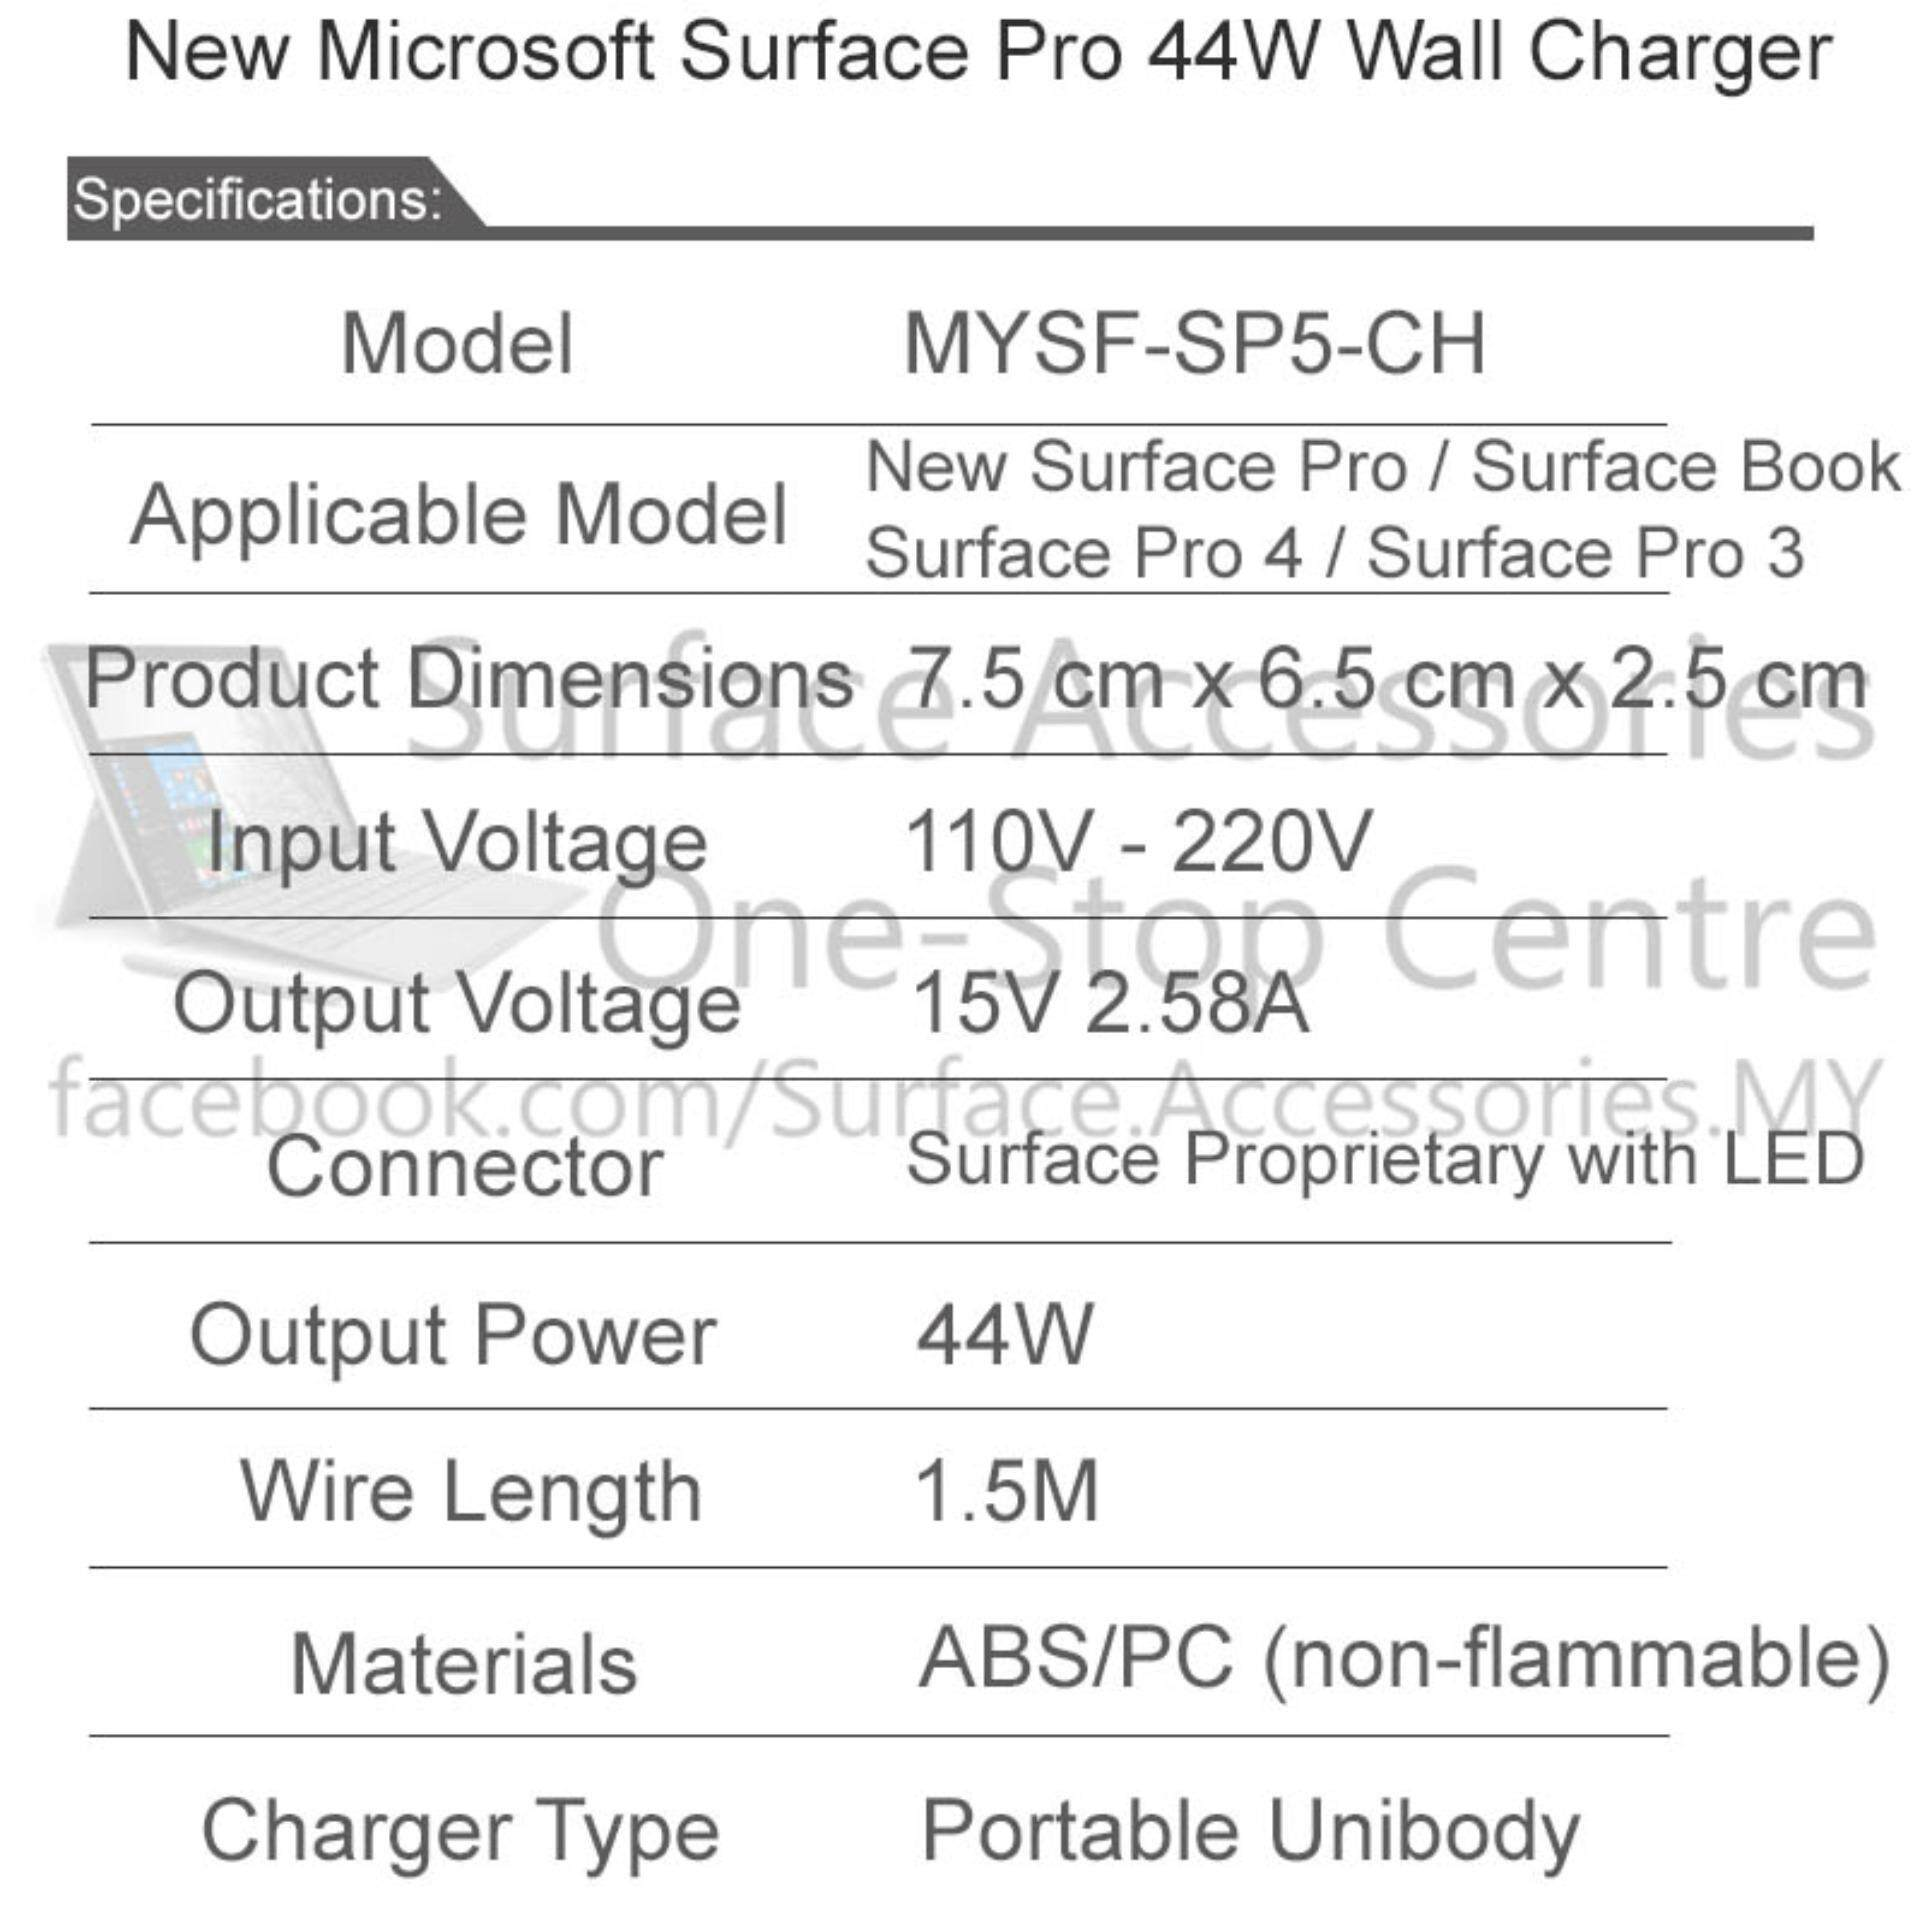 [MALAYSIA] New Surface Pro 2017 44W Charger with Original Charger Cable LED Charger New Microsoft Surface Pro 5 Charger with Official and Original Micosoft Charging Cable with LED Indicator Replacement Model 1800 15V 2.58A[ASSEMBLED IN MALAYSIA]